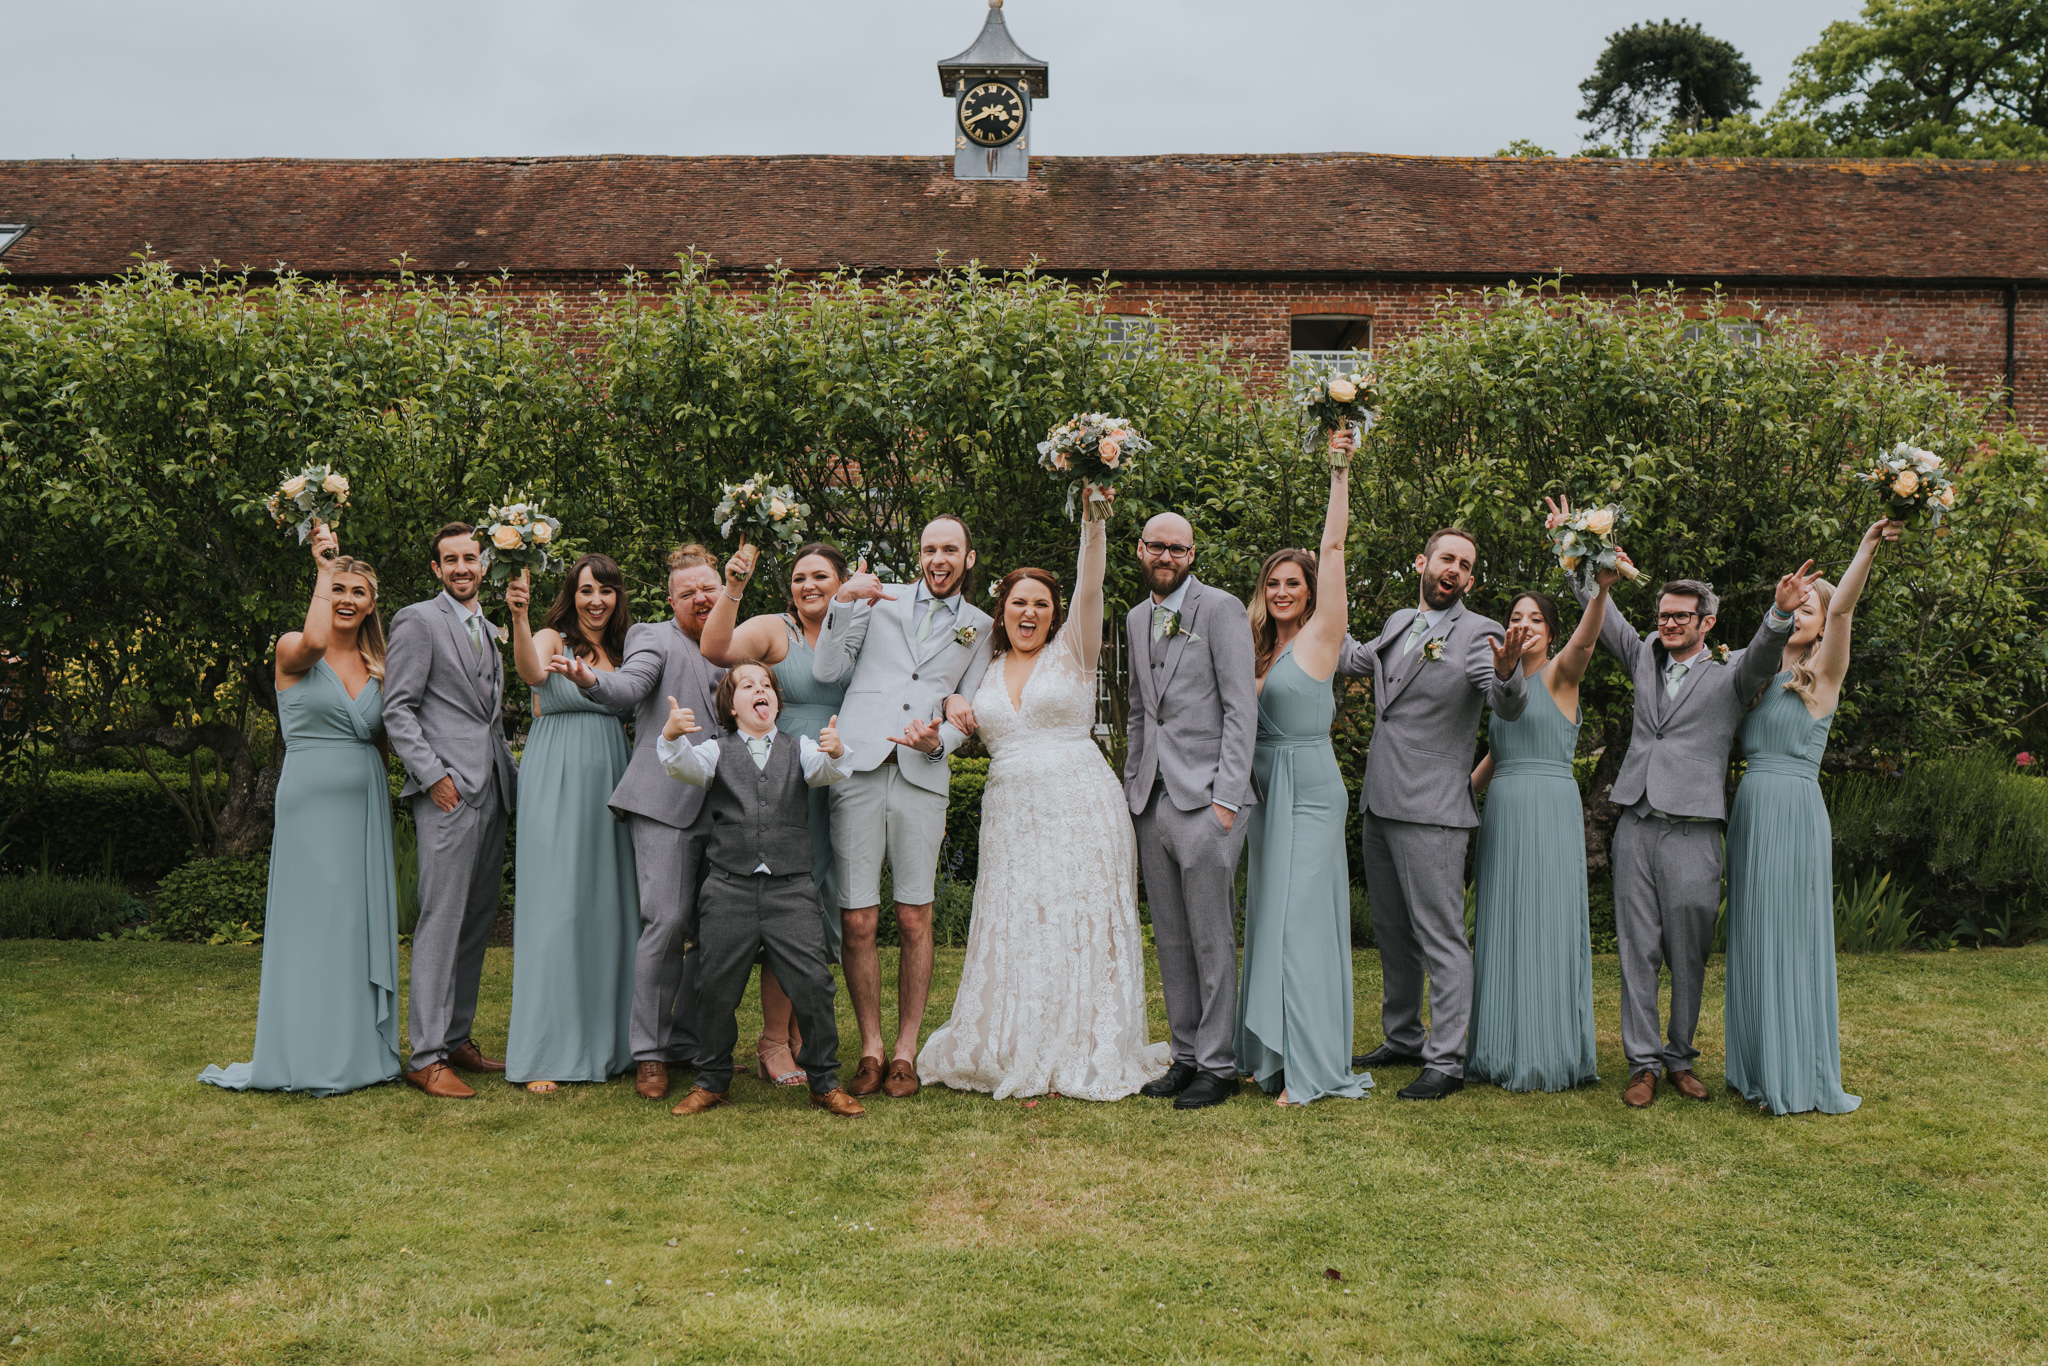 hayley-sam-secret-garden-kent-boho-wedding-grace-elizabeth-colchester-essex-alternative-wedding-photographer-essex-suffolk-norfolk-devon (26 of 36).jpg